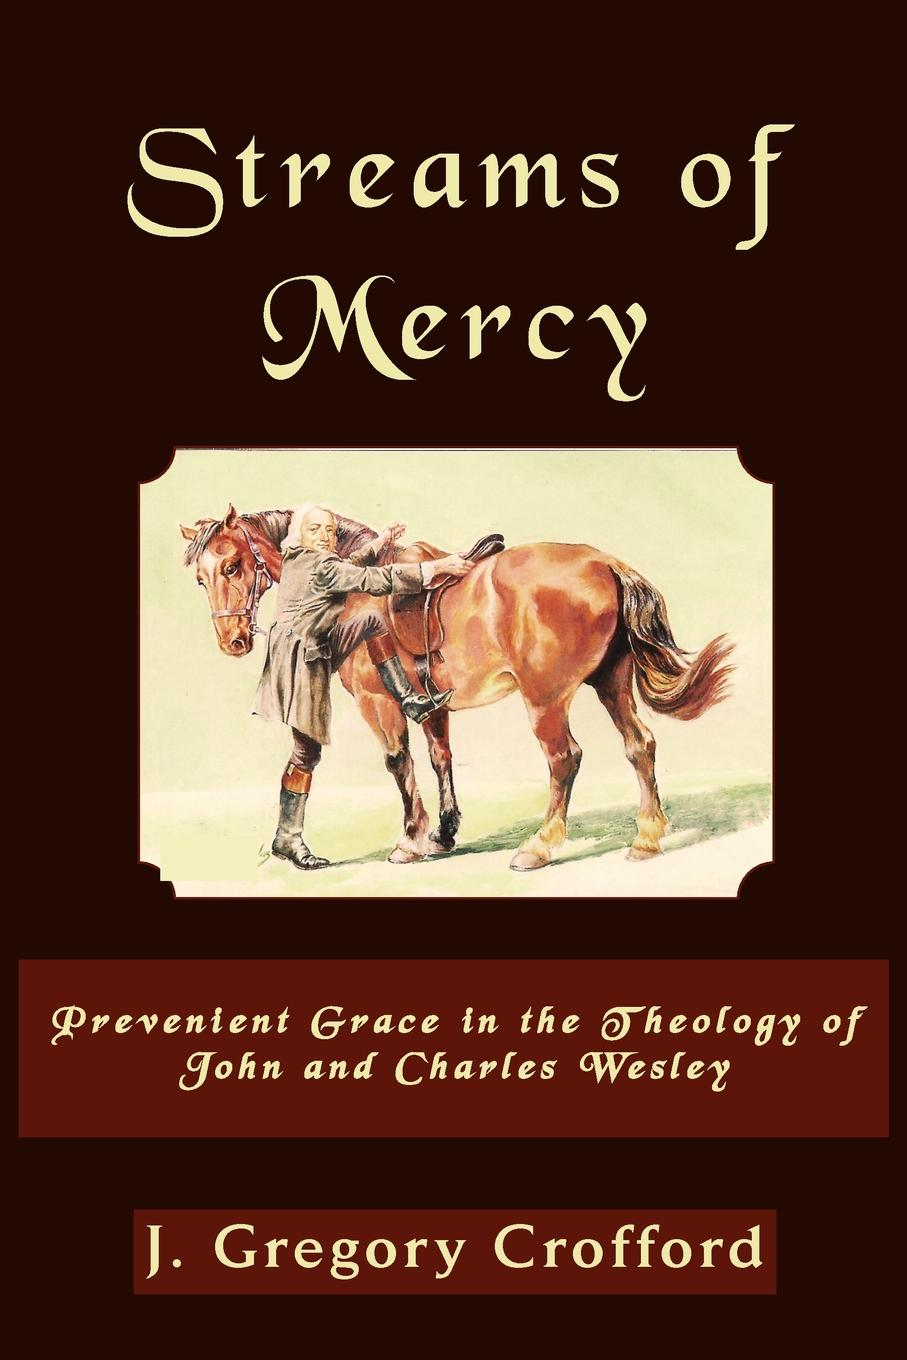 Streams of Mercy: Prevenient Grace in the Theology of John and Charles Wesley